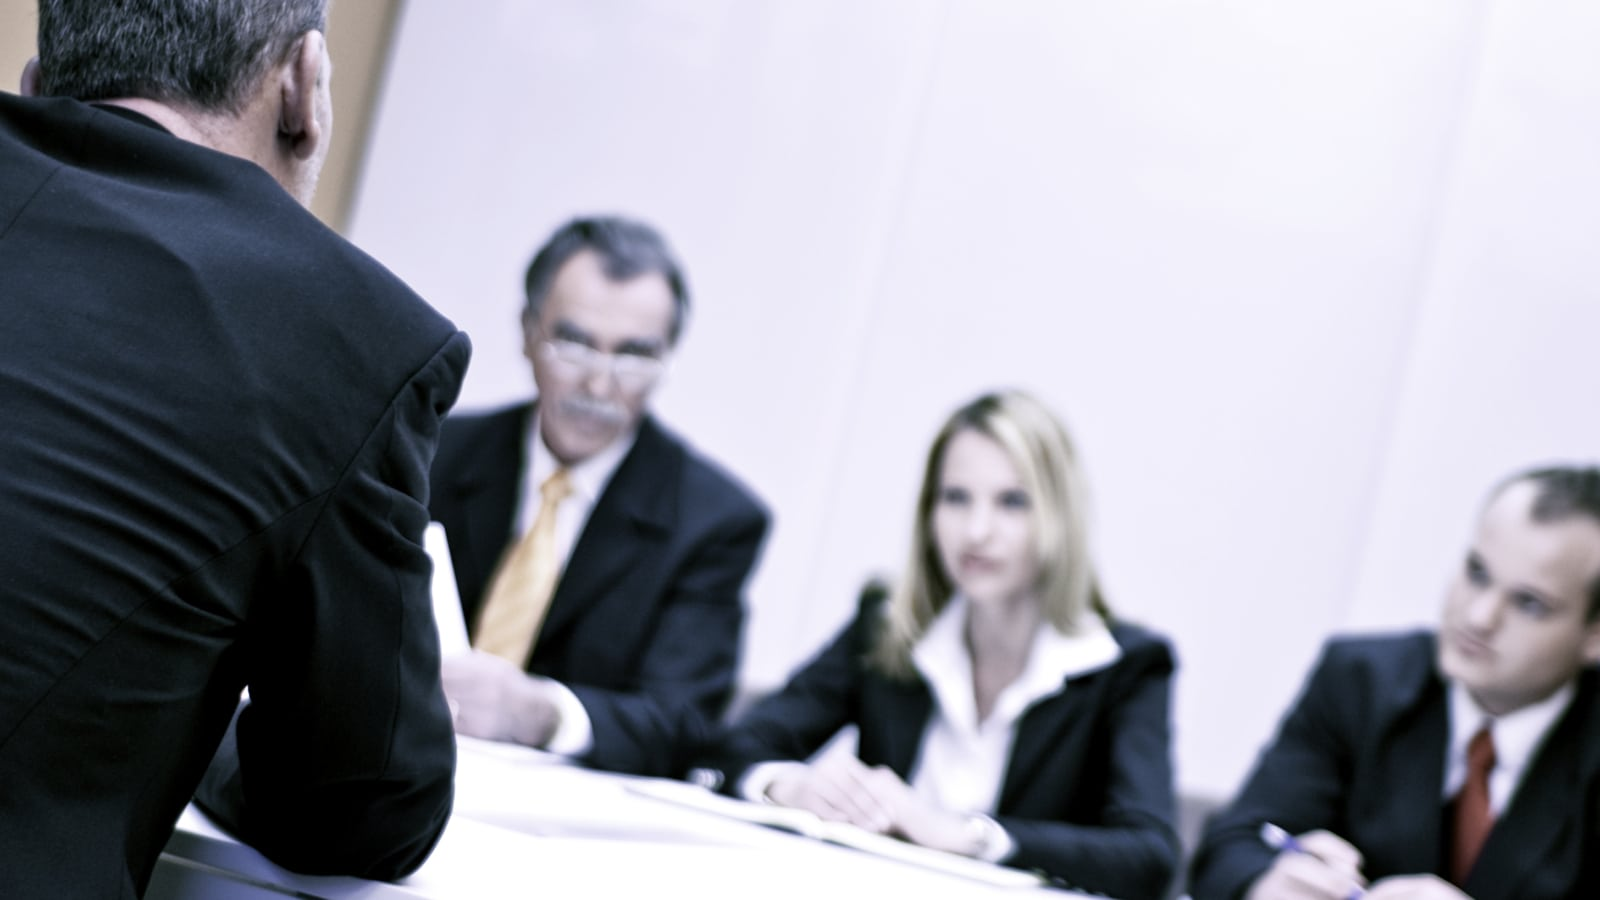 Lawyers Mediating In A Conference Room Stock Photo